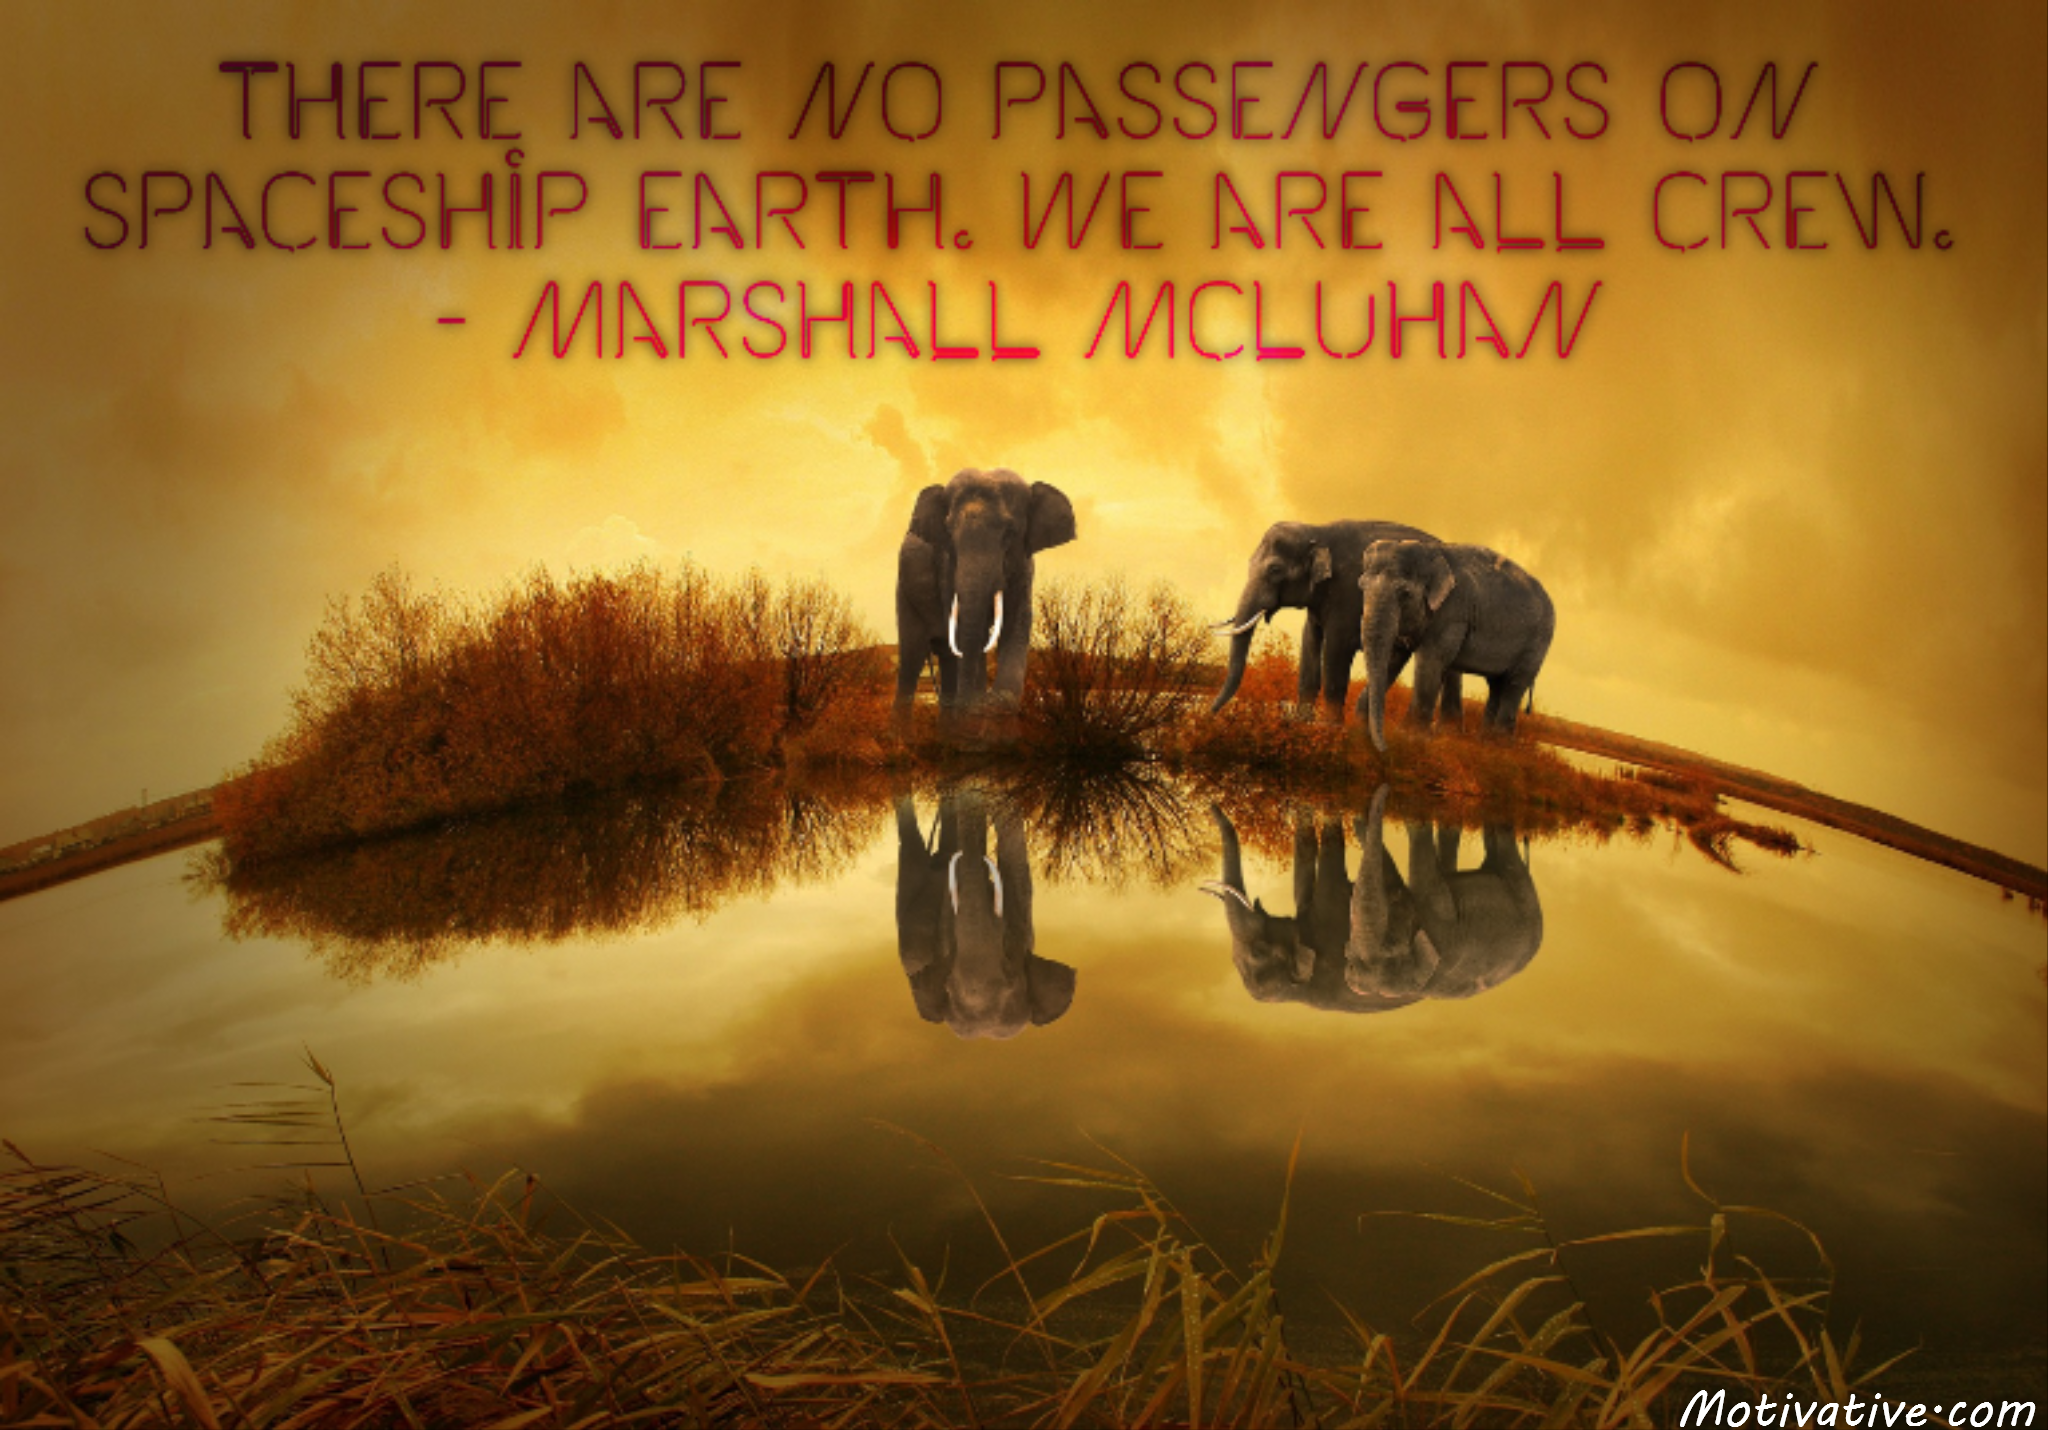 There are no passengers on spaceship earth. We are all crew. – Marshall McLuhan